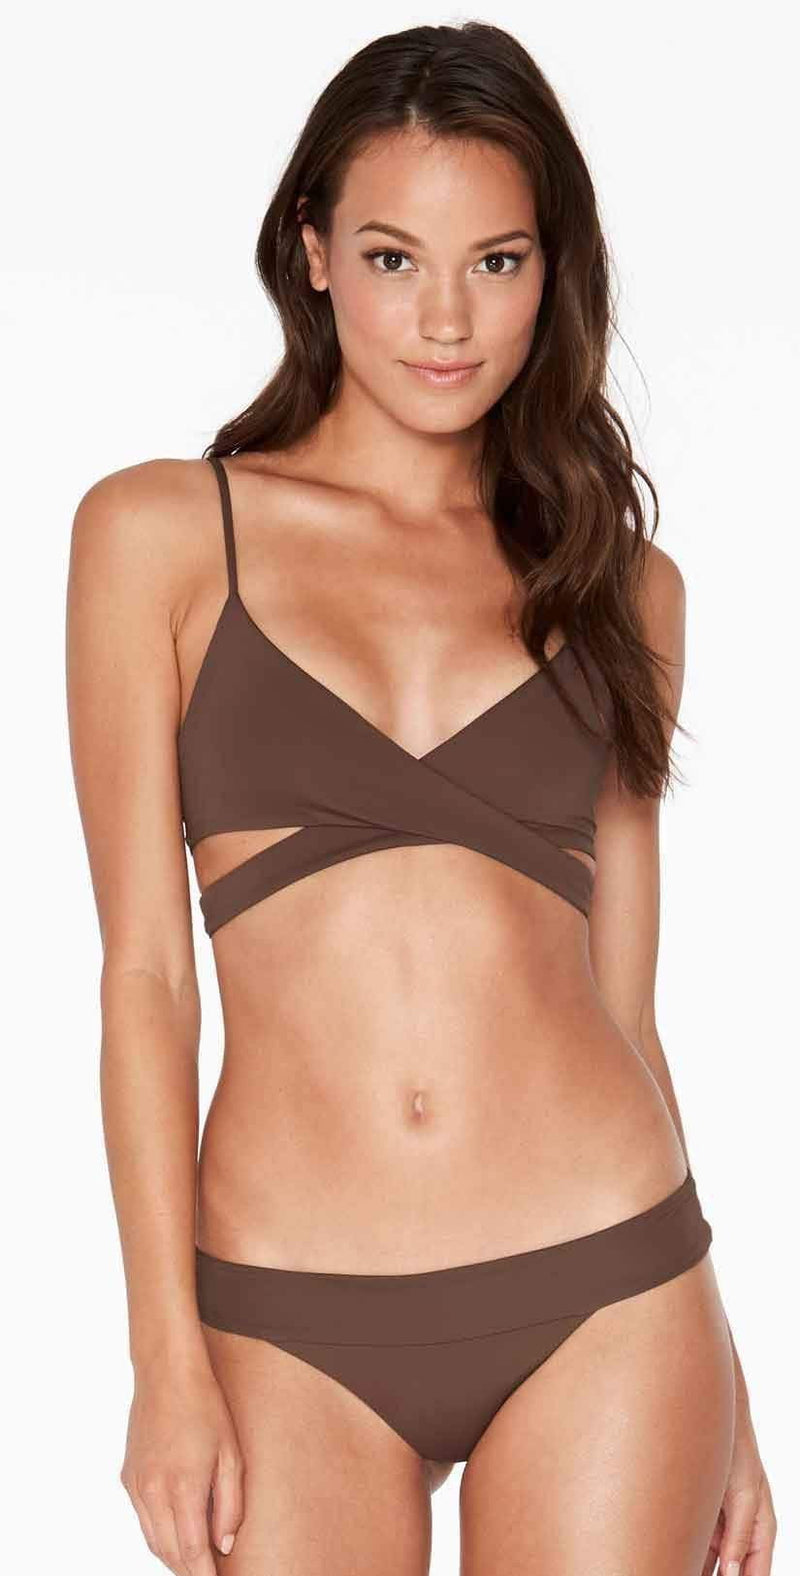 L Space Rocky Wrap Top in Chocolate LSRKT16-CHO: